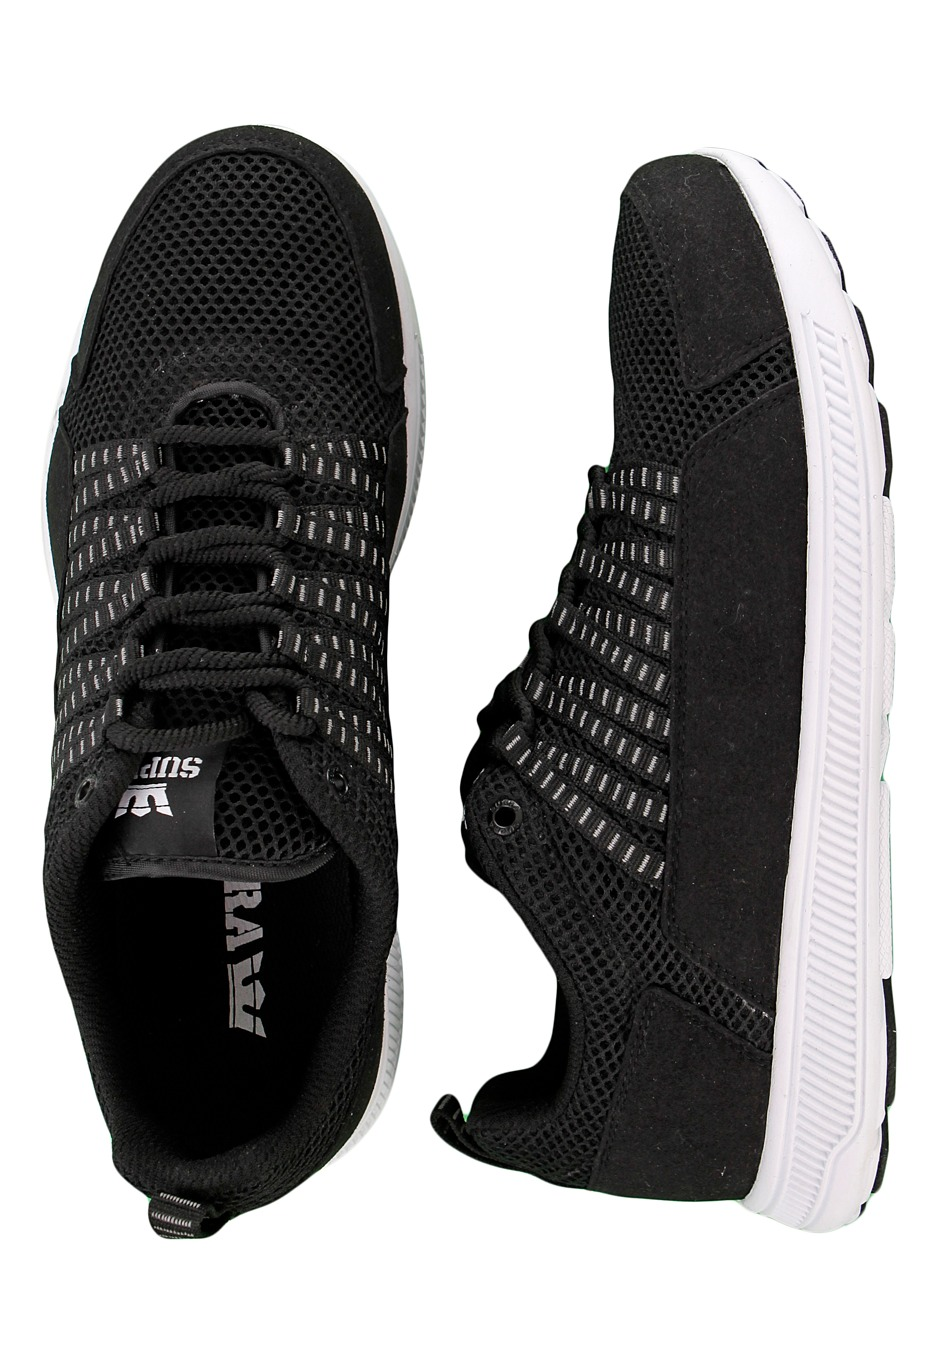 Supra - Owen Black Mesh Microfiber White - Shoes - Impericon.com Worldwide 668b43dbf674